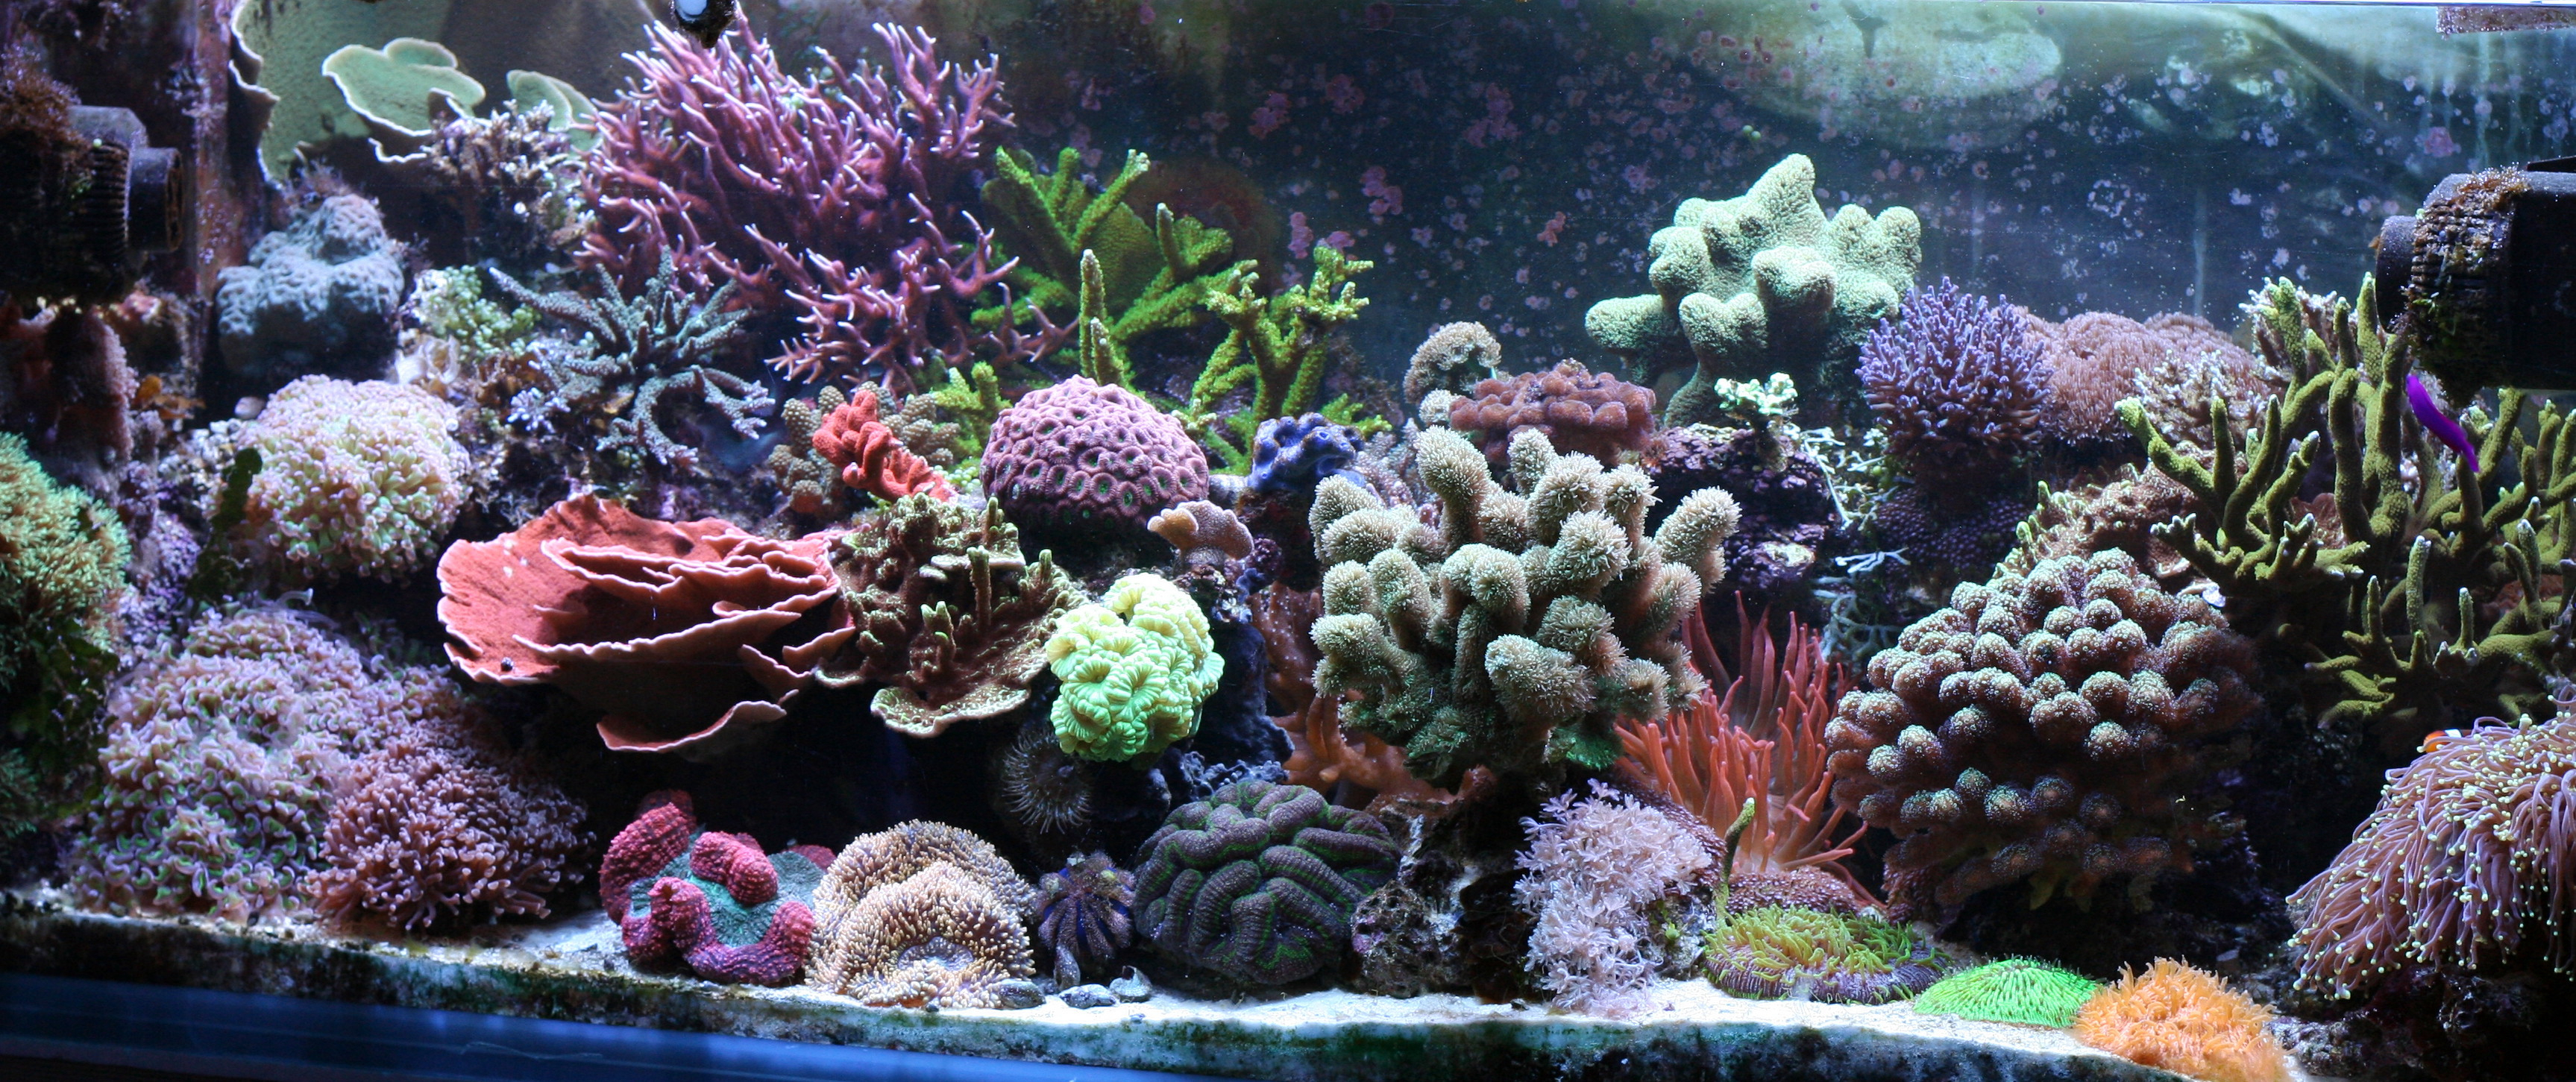 Fish tank decorations zombie - Finding Nemo Coral Reef Aquarium Background Aquarium Plants Pinterest Finding Nemo Aquarium And Search